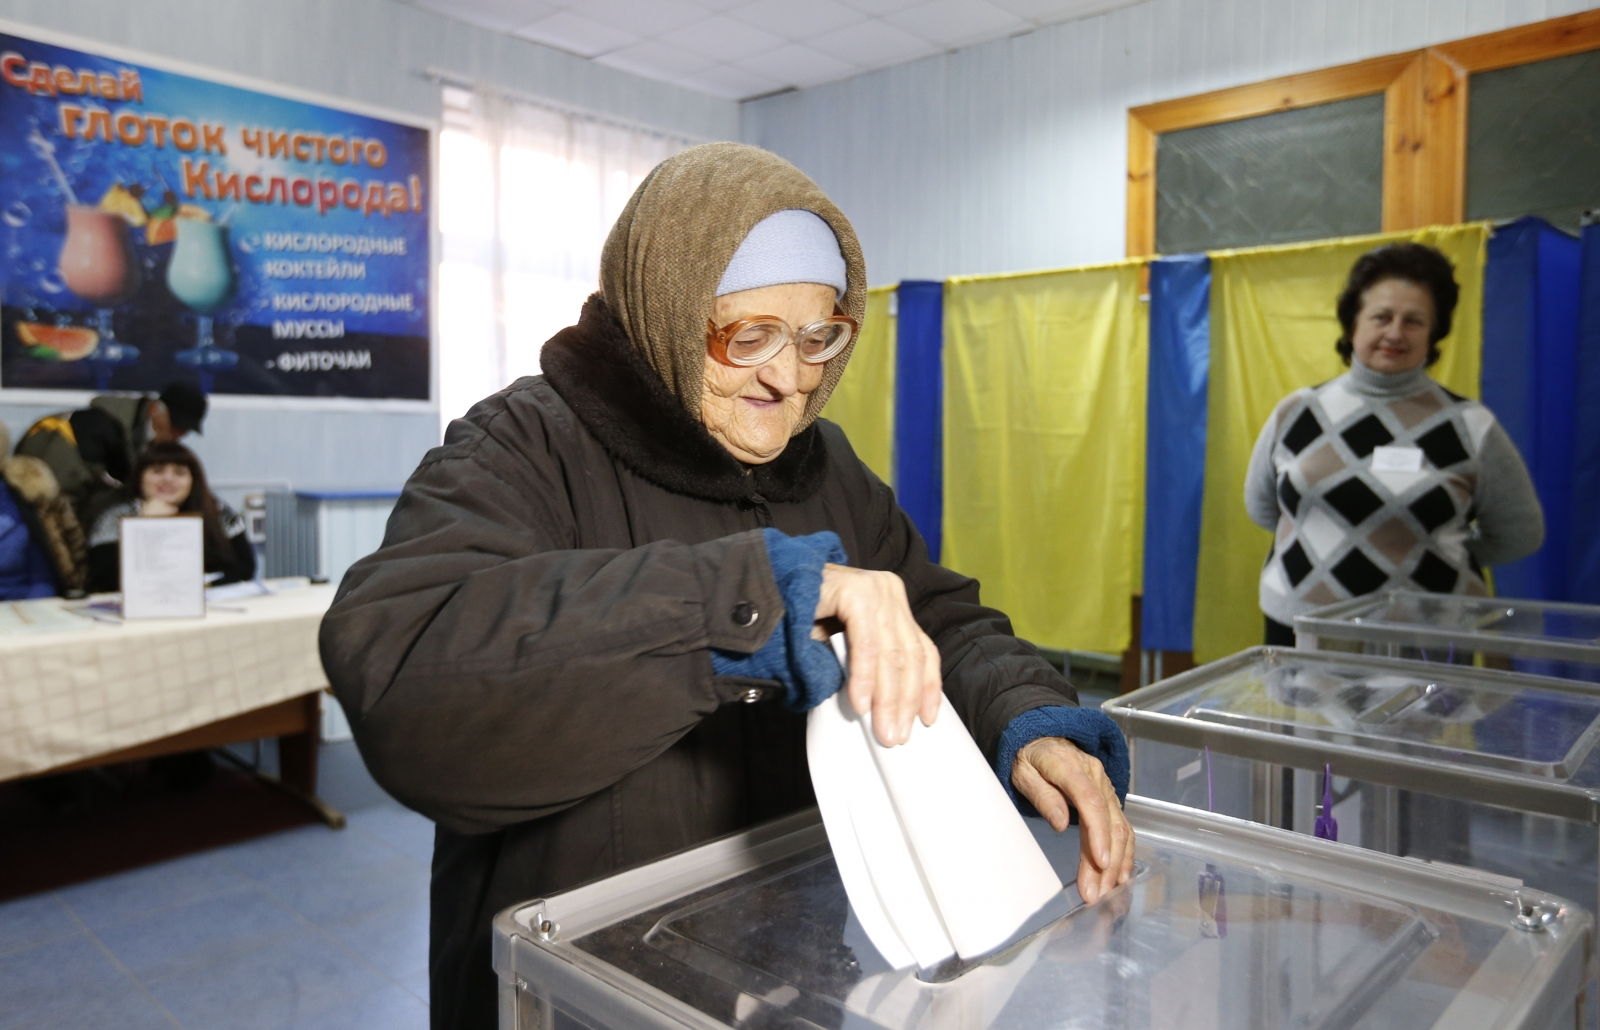 Ukraine snap elections